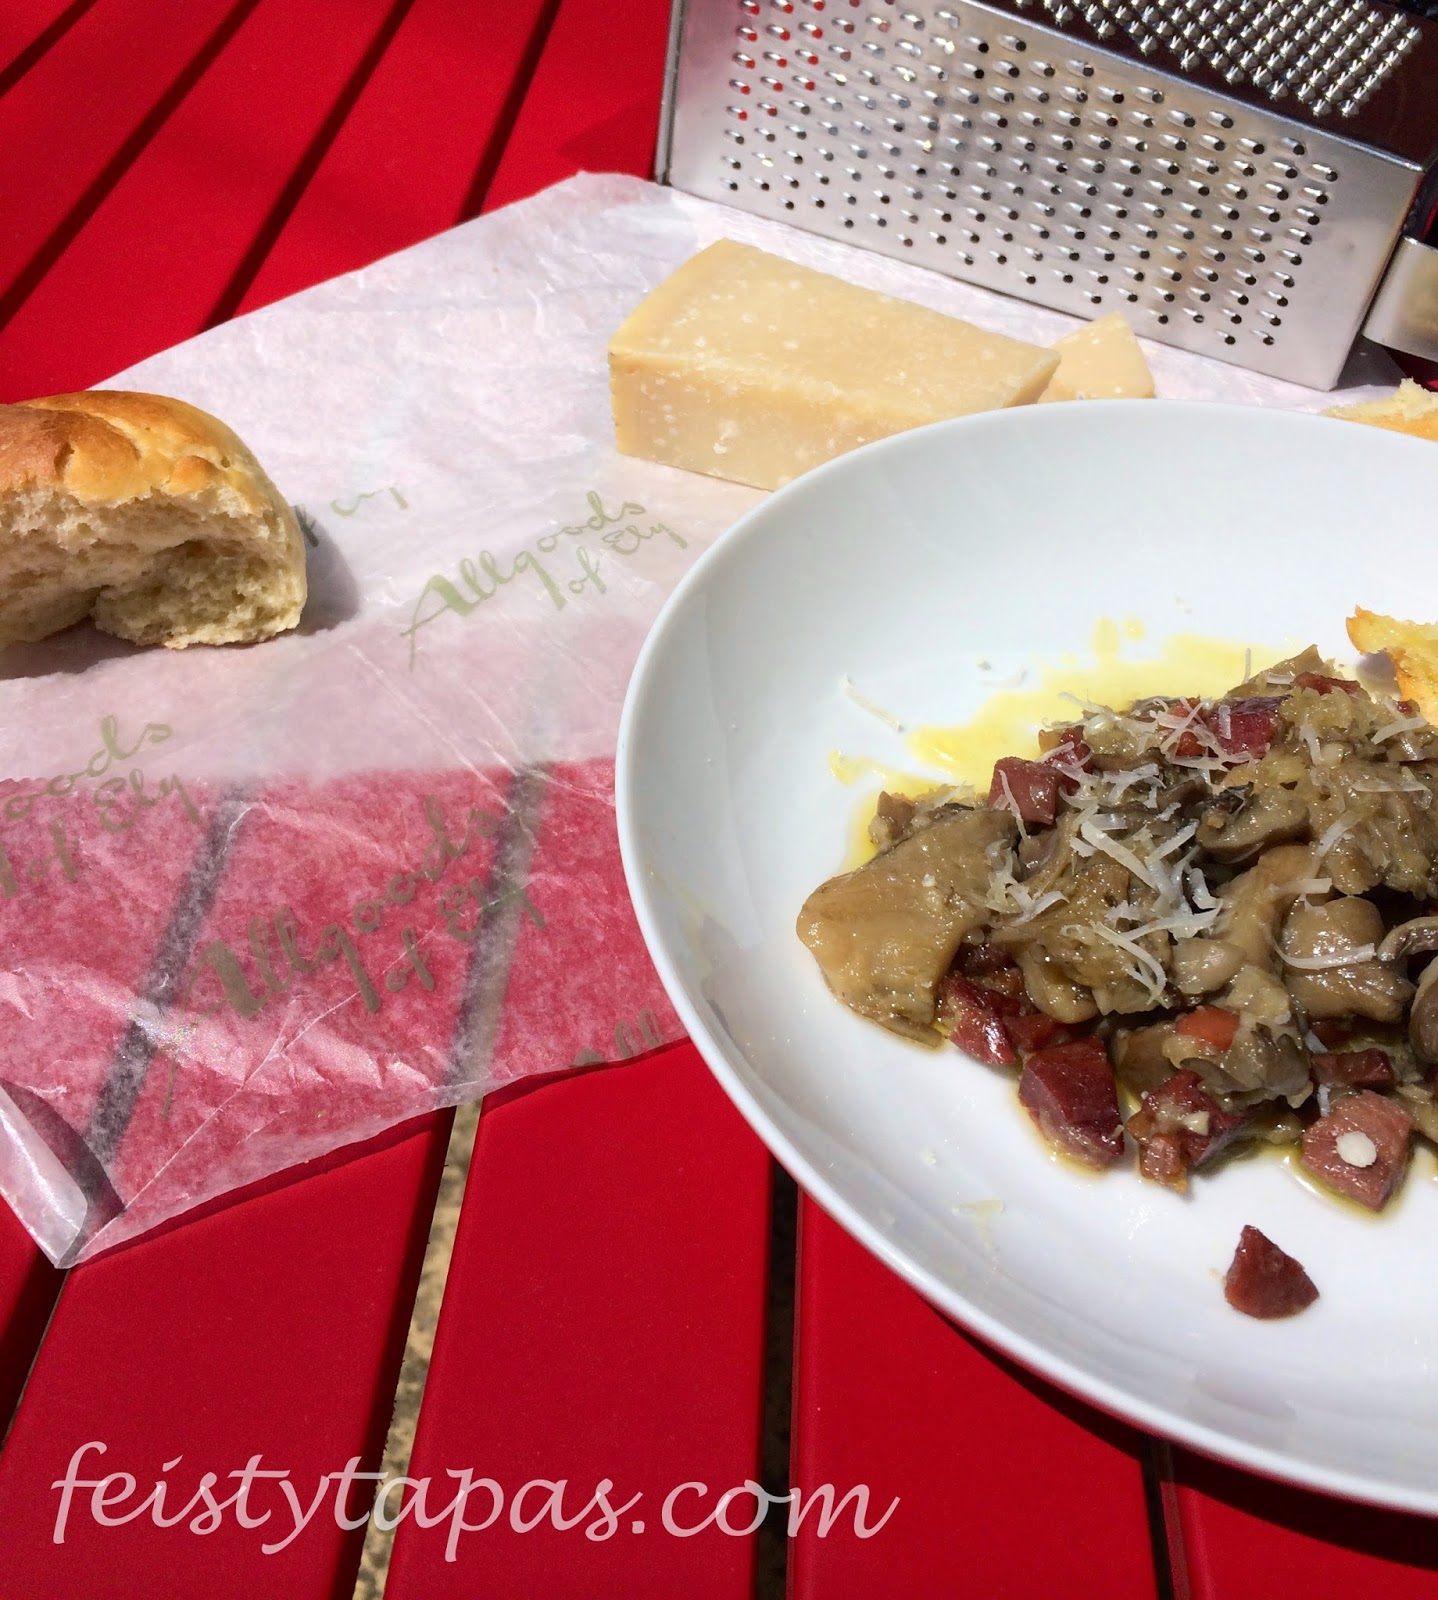 Garlic and serrano ham mushrooms (Thermomix and conventional recipe)